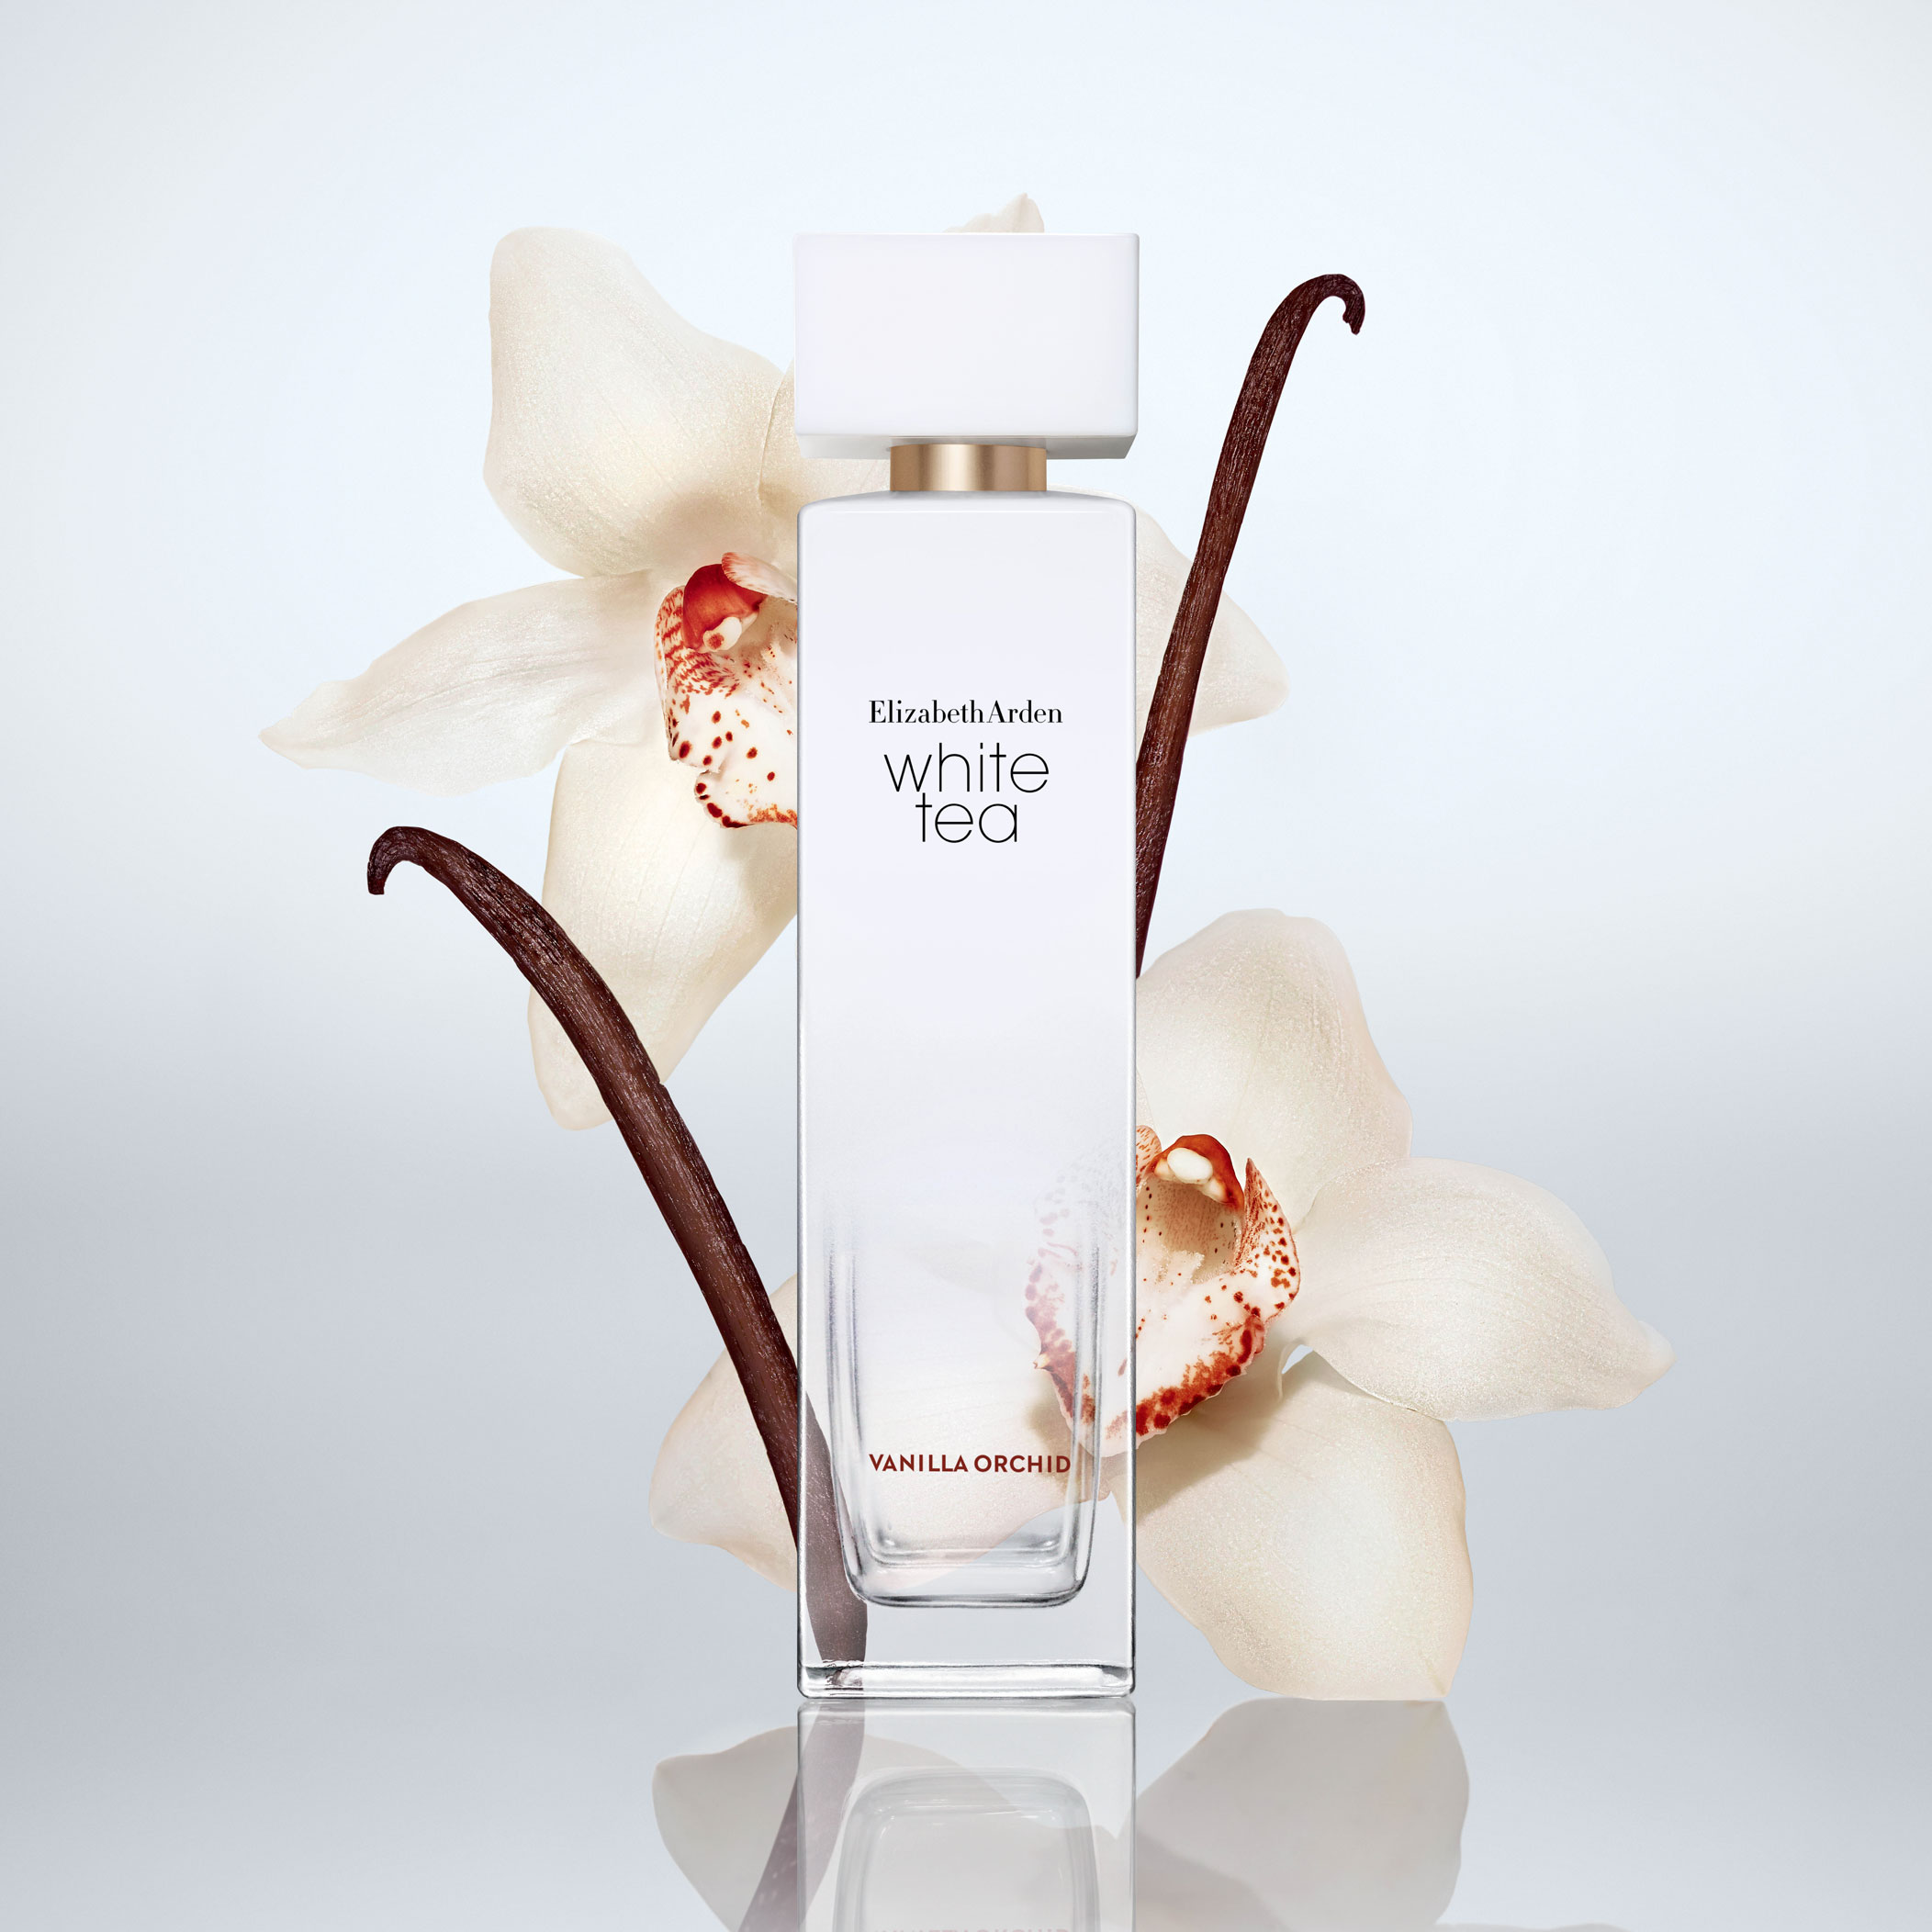 White Tea Vanilla Orchid - Eau De Toilette Fragrance, , large